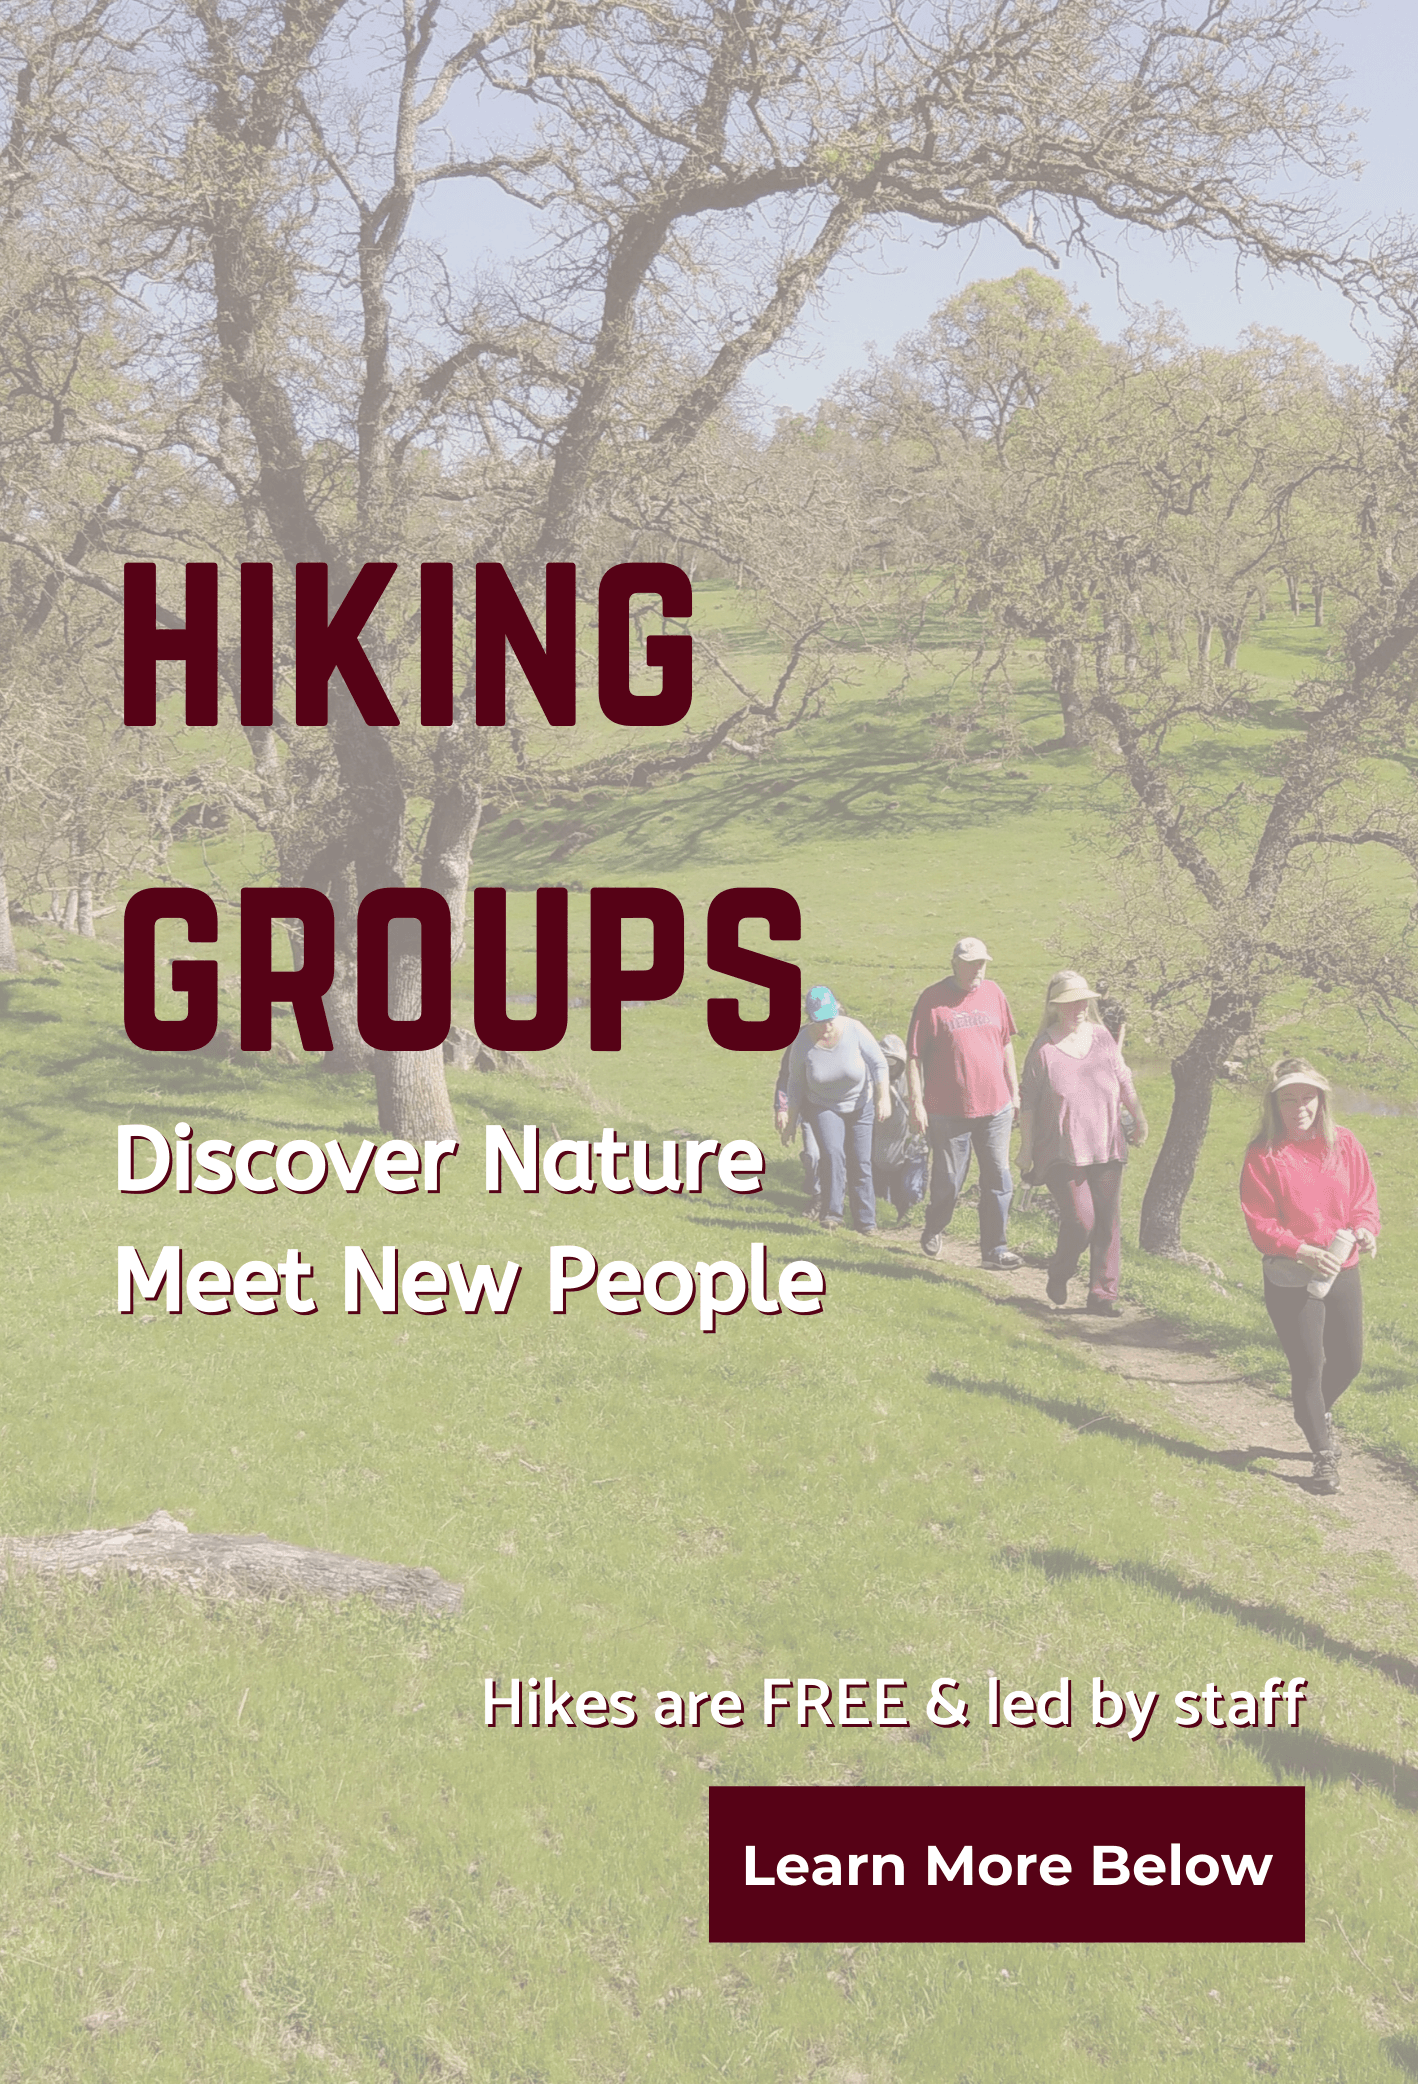 Hiking Groups